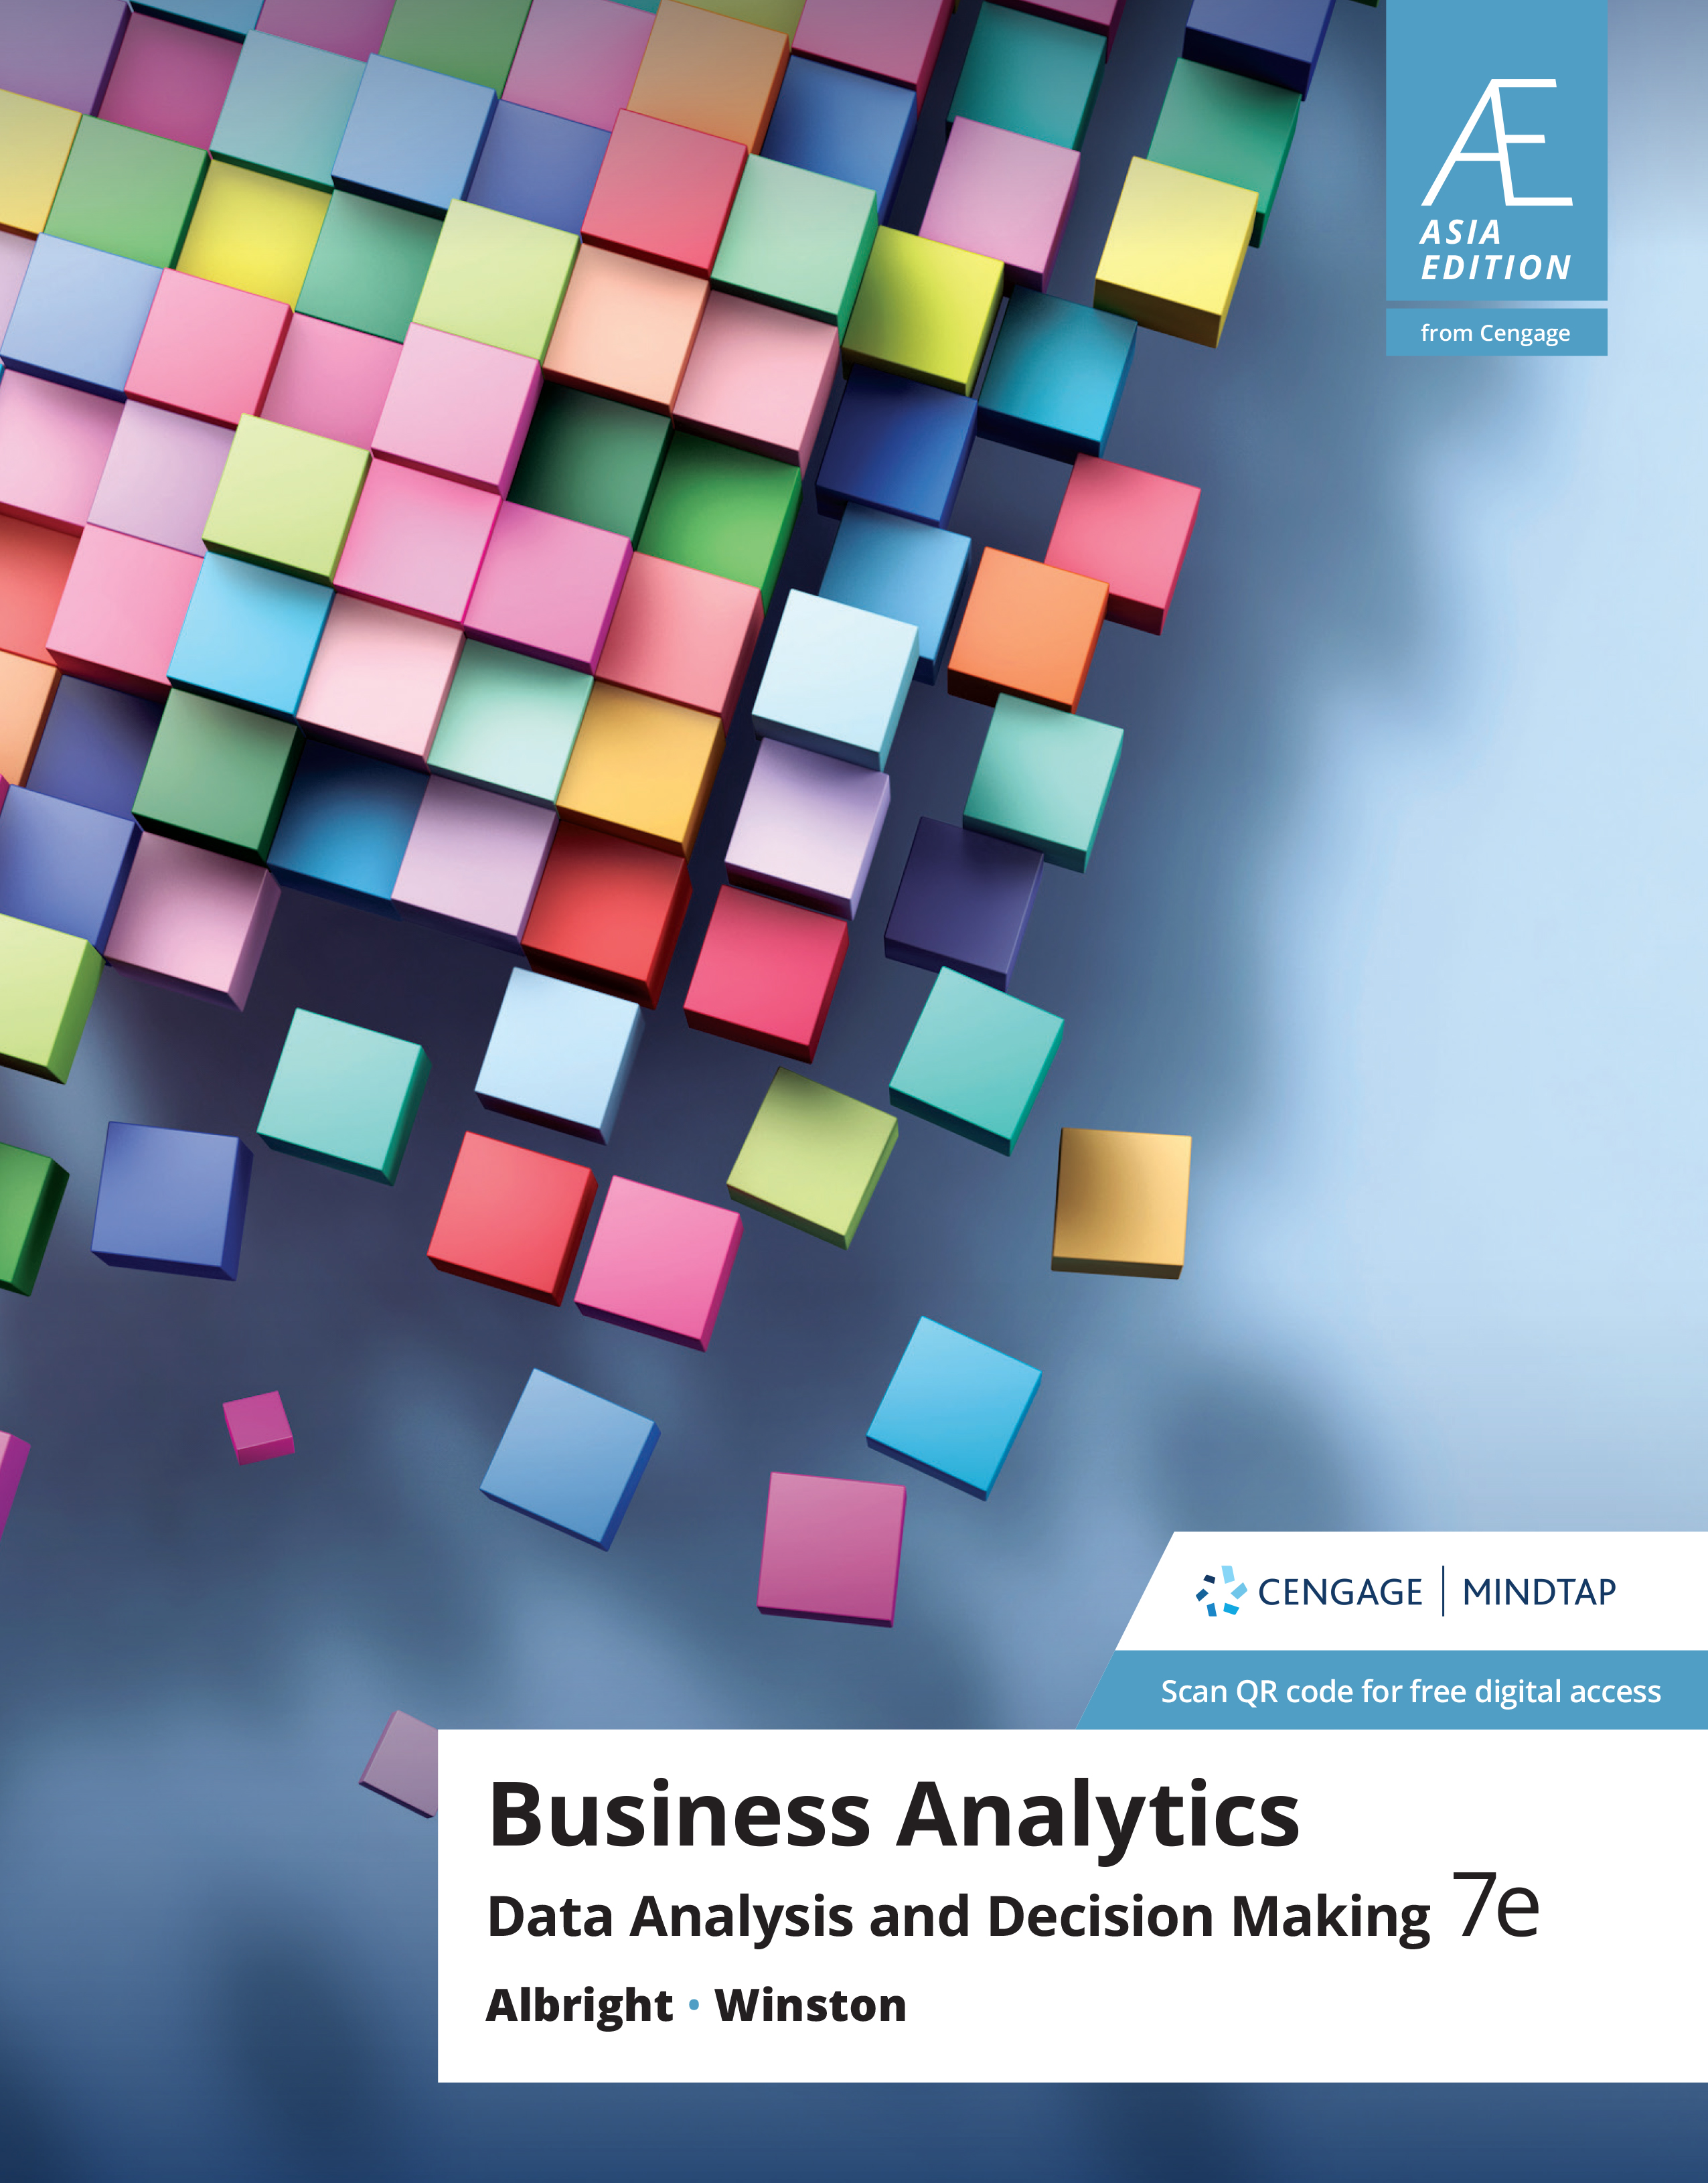 AE Business Analytics: Data Analysis & Decision Making